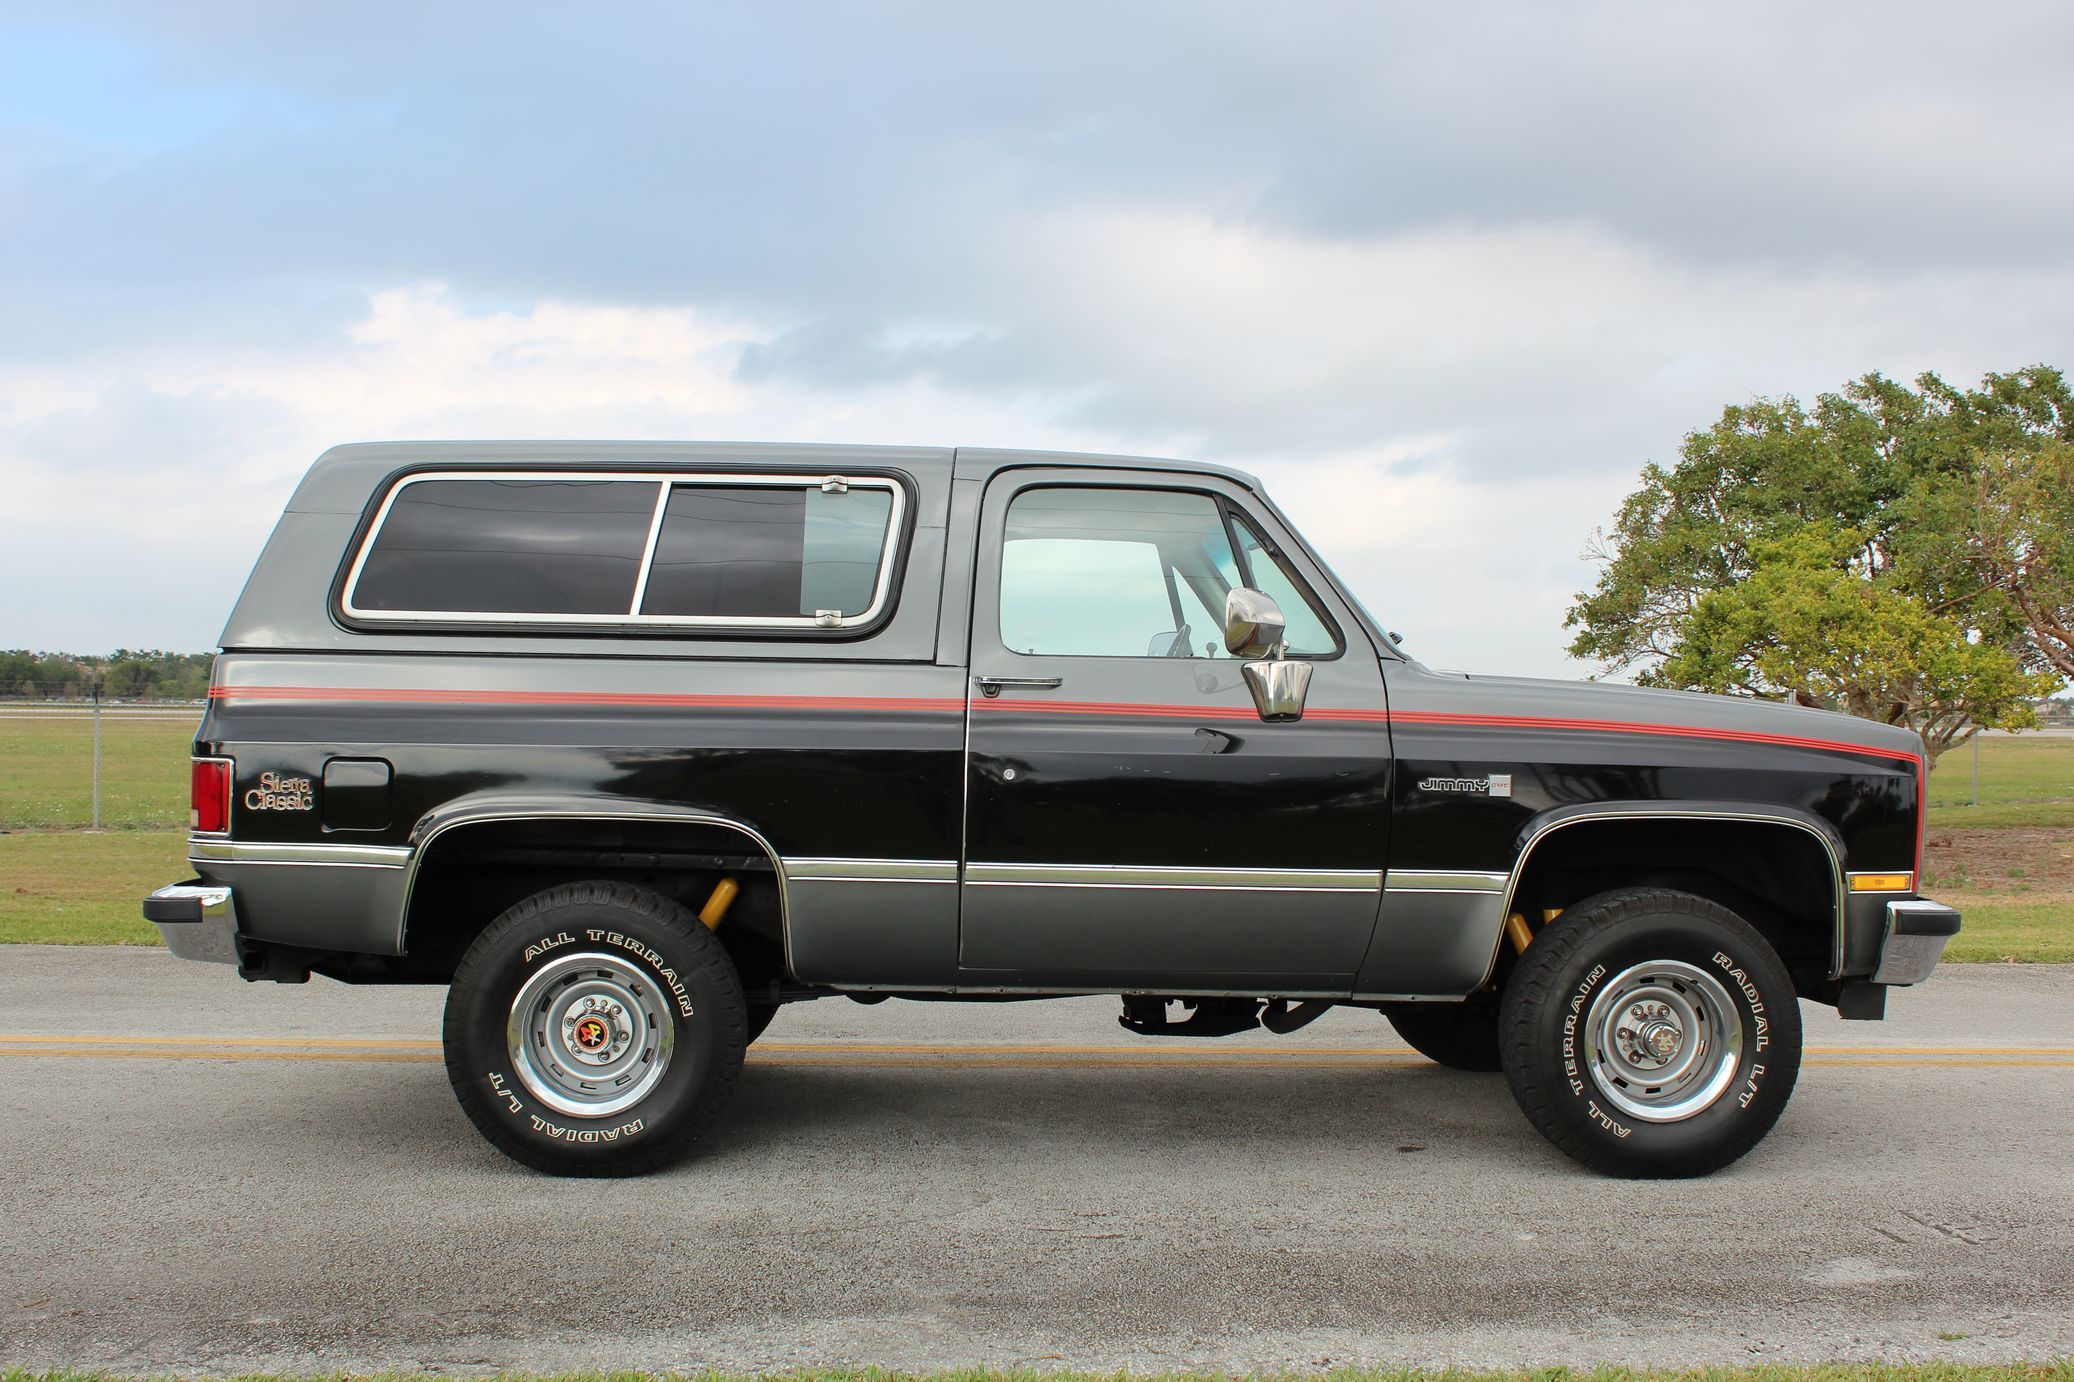 1987 gmc jimmy 4x4 for sale on bat auctions ending february 19 lot 8 195 bring a trailer [ 2074 x 1382 Pixel ]